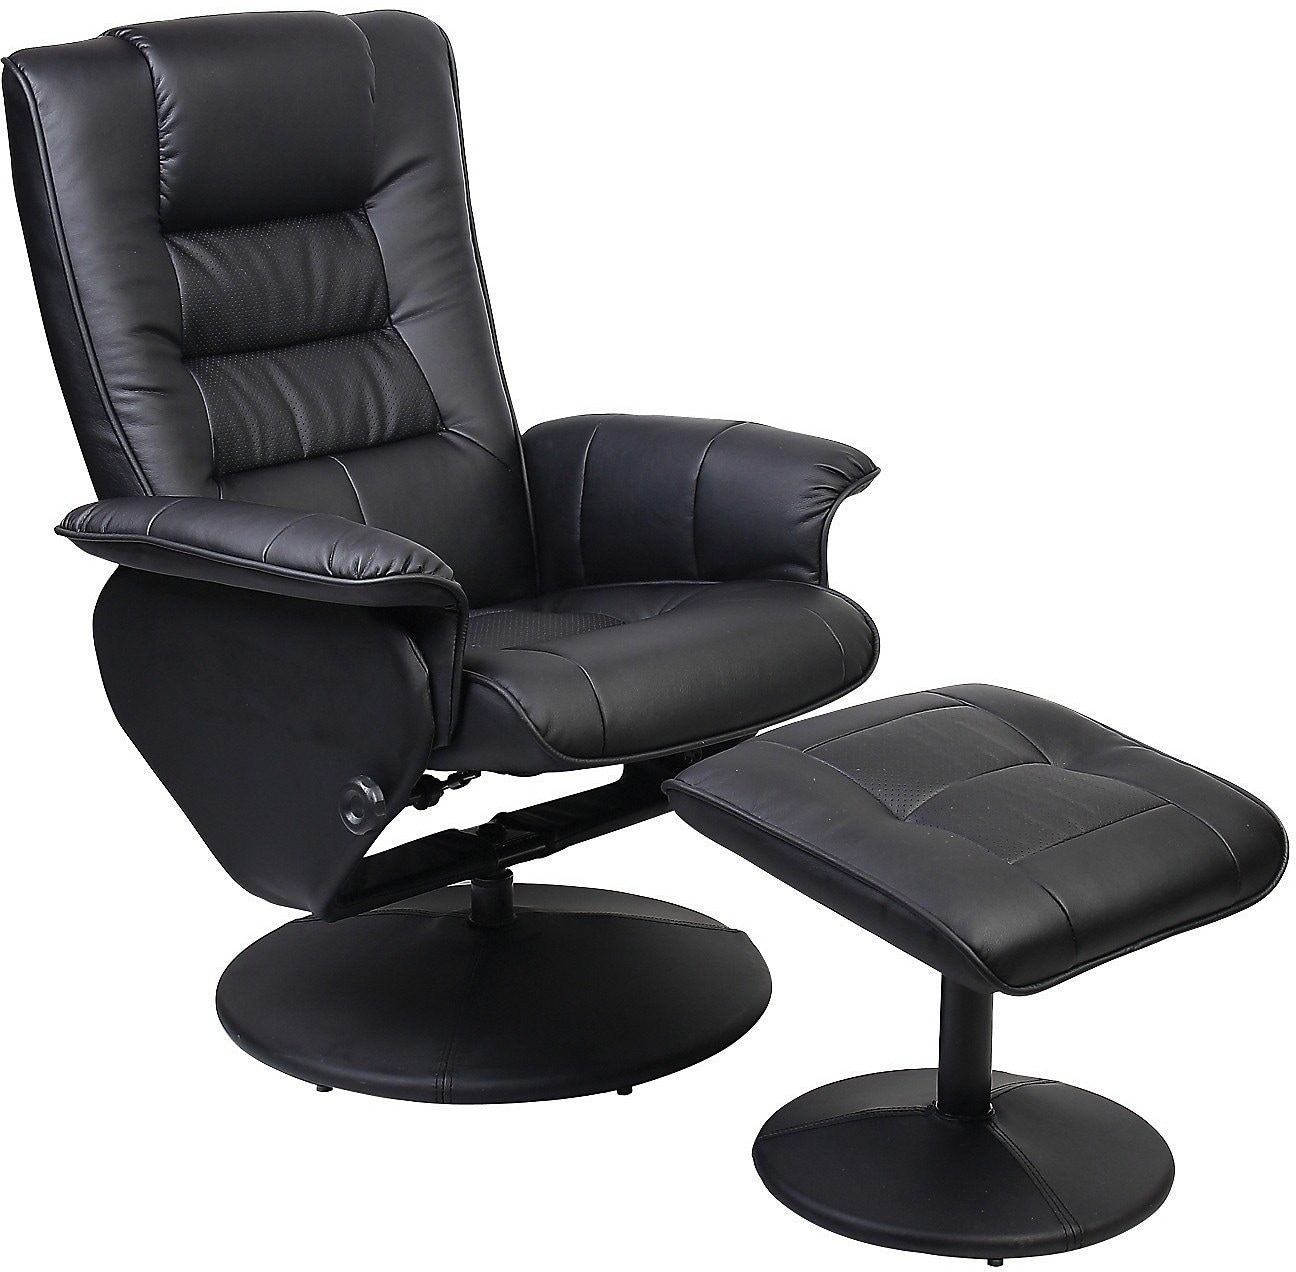 Living Room Furniture - Duncan Reclining Chair w/Ottoman - Black